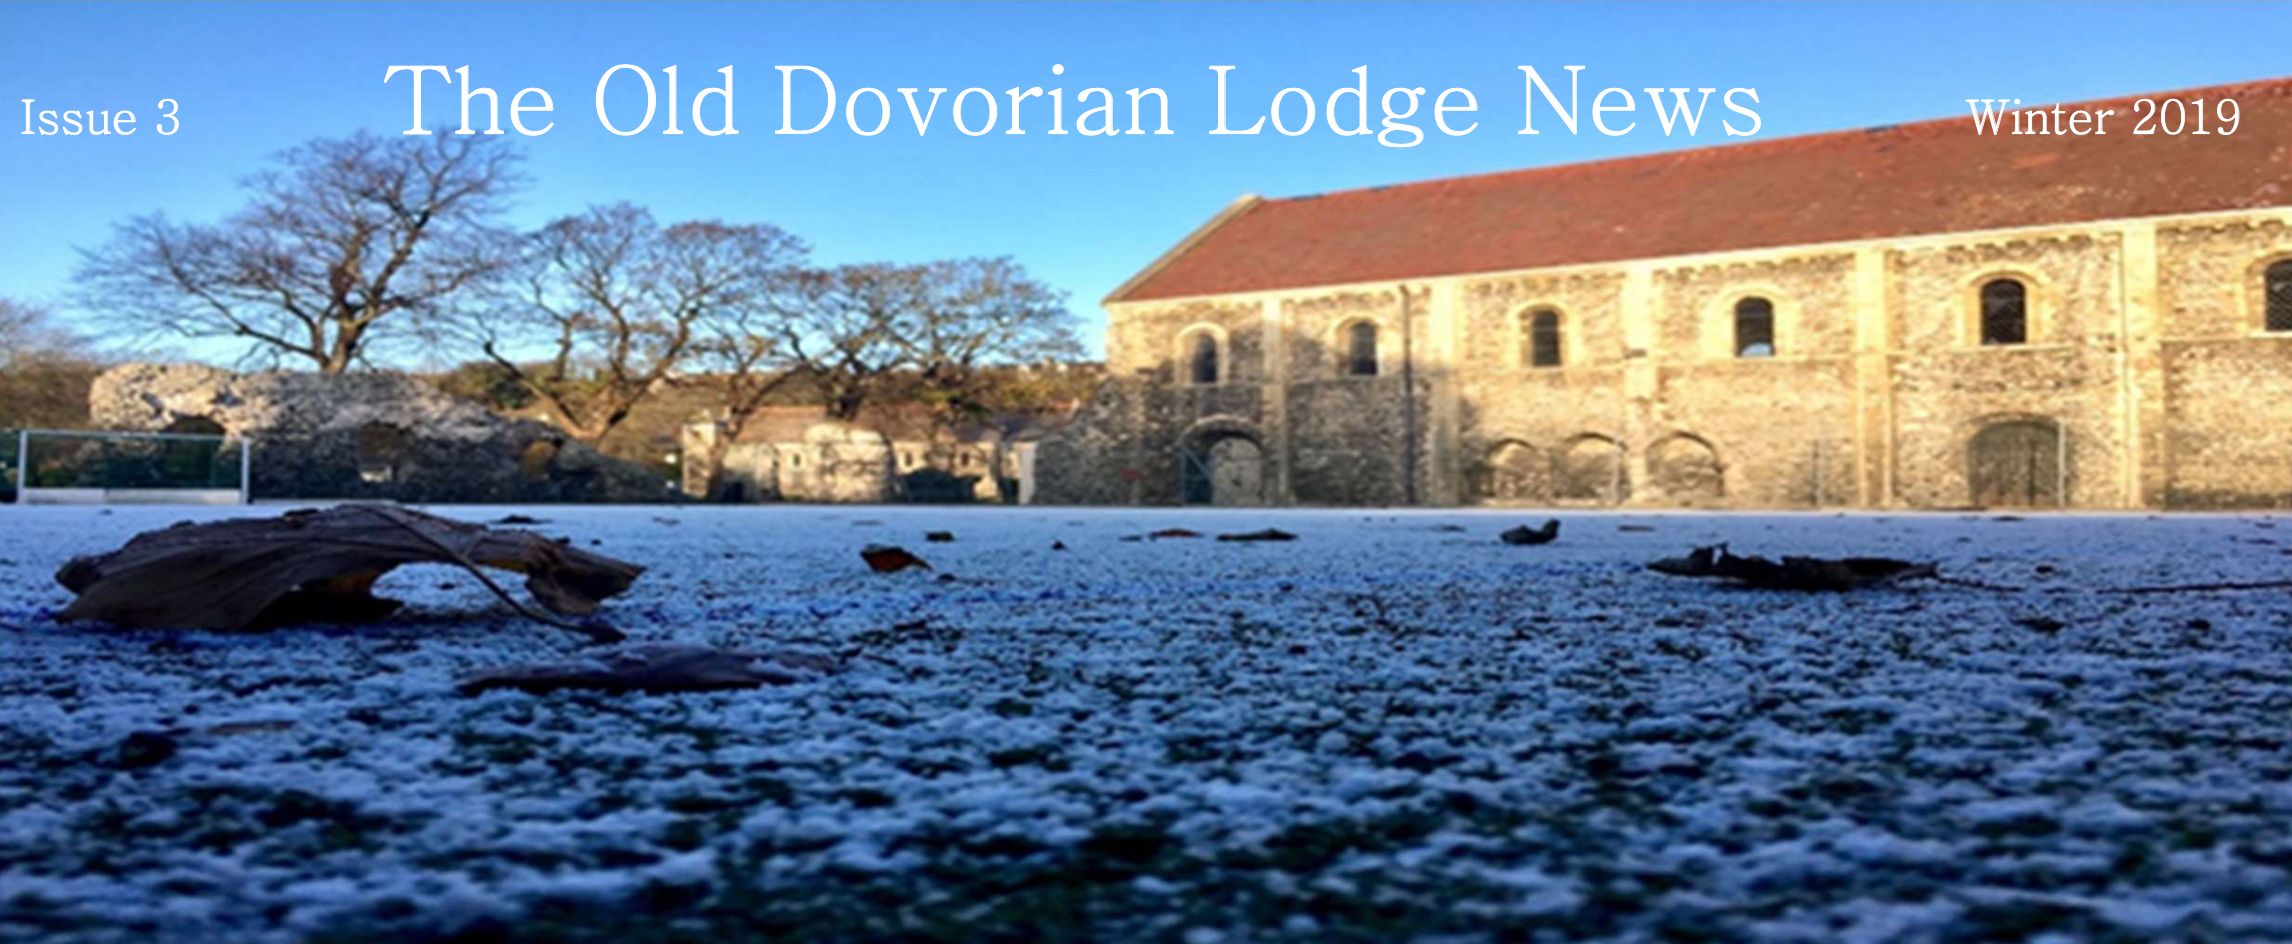 The Old Dovorian Lodge News Winter 2019